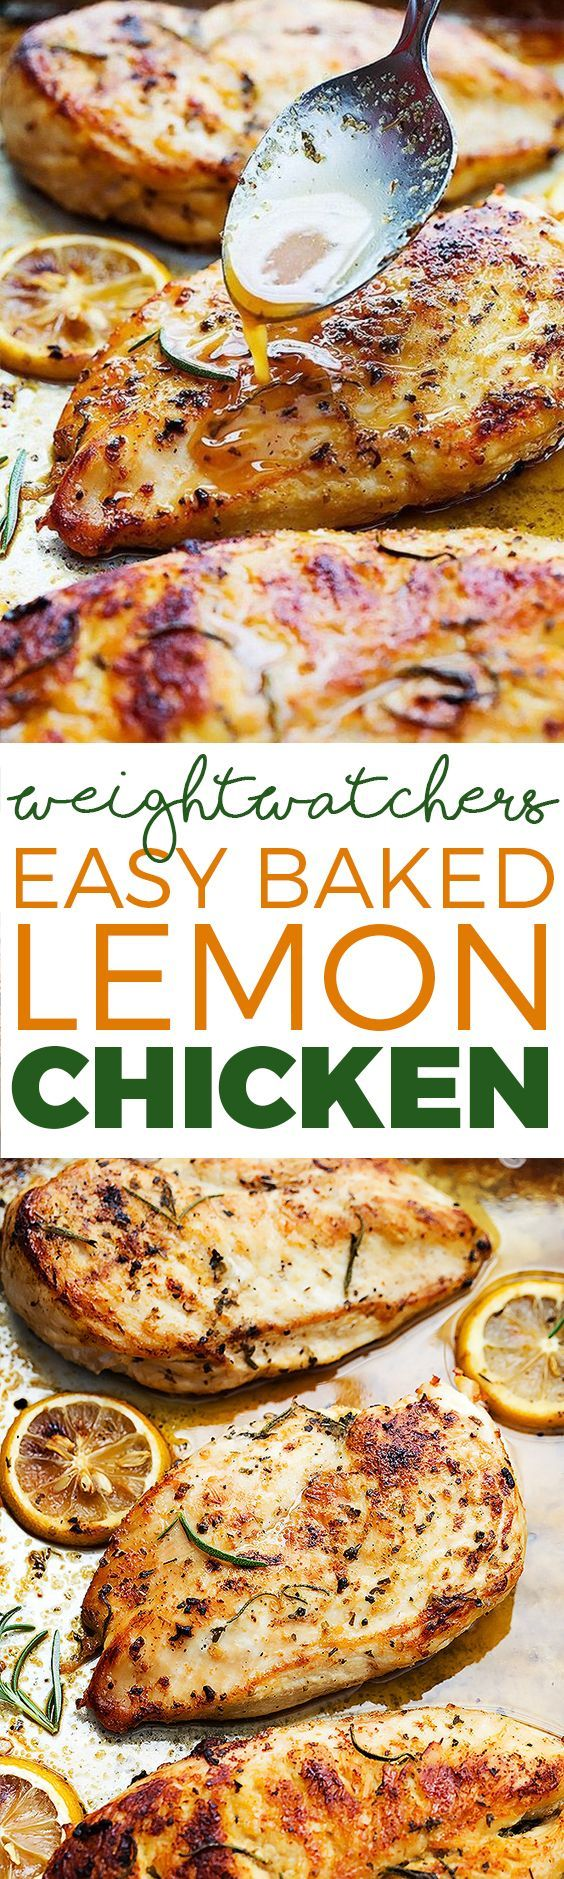 EASY HEALTHY BAKED LEMON CHICKEN (Weight Watchers SmartPoints)